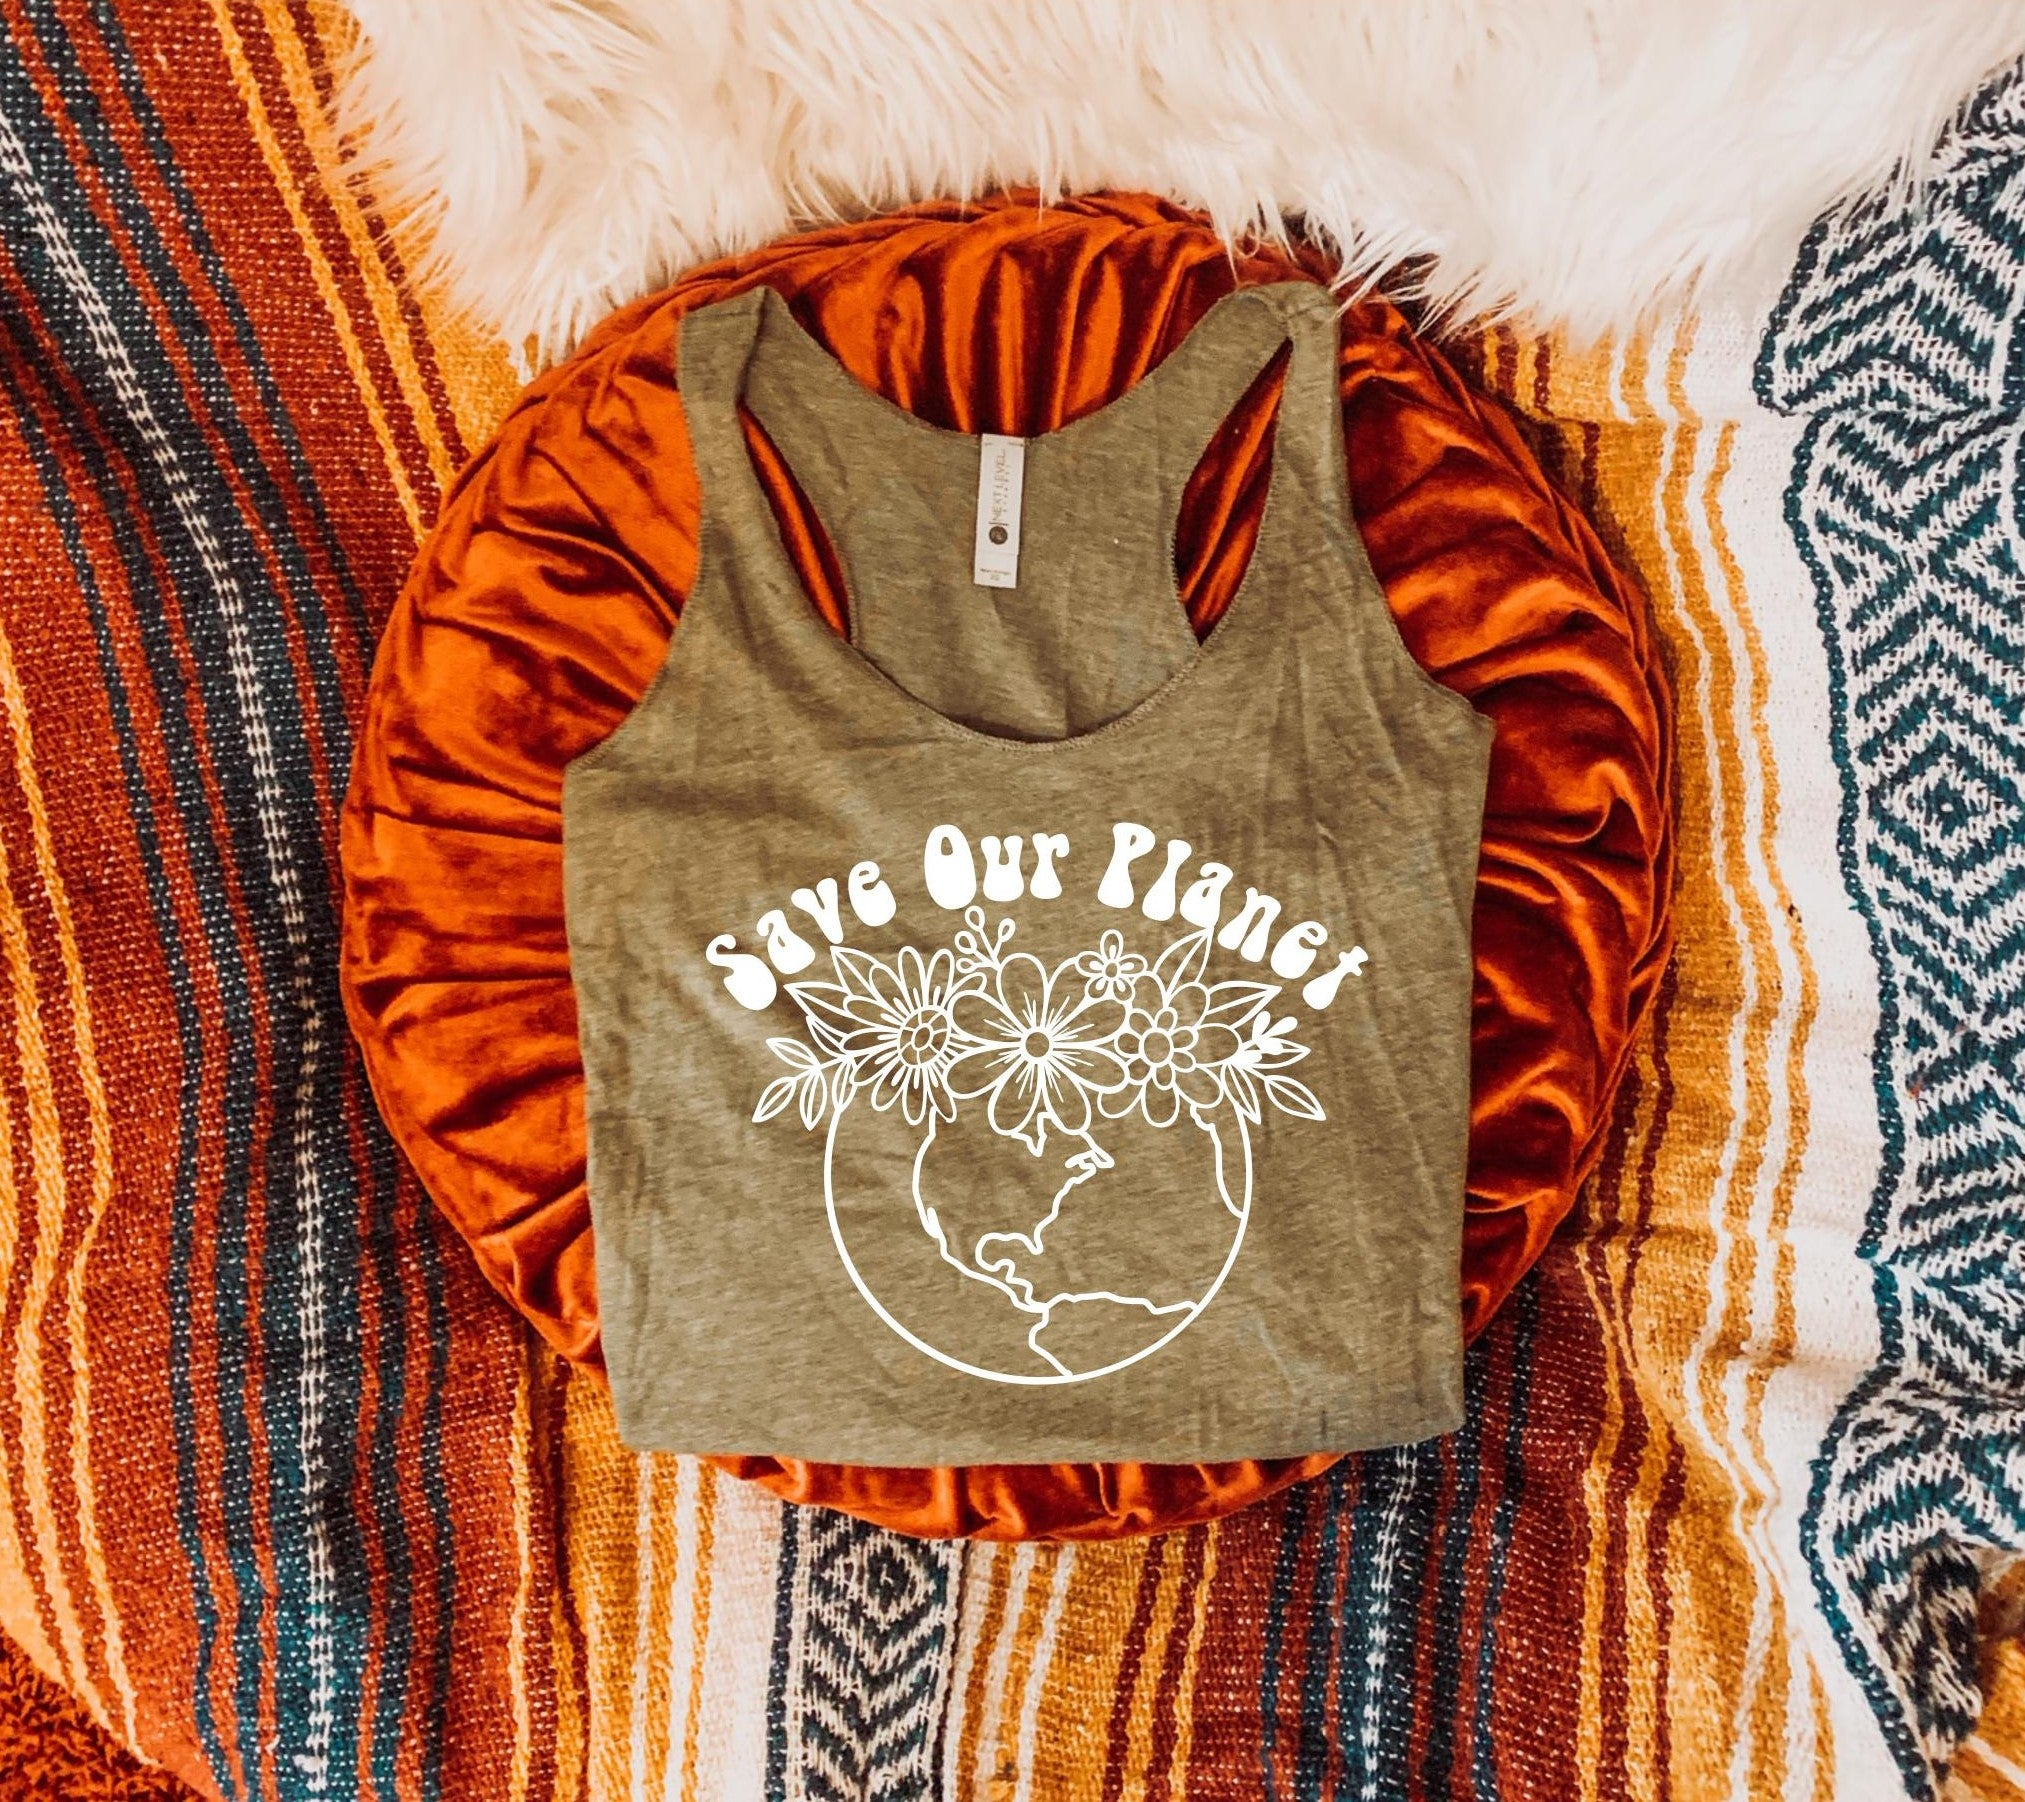 Save our planet - Women's Fit